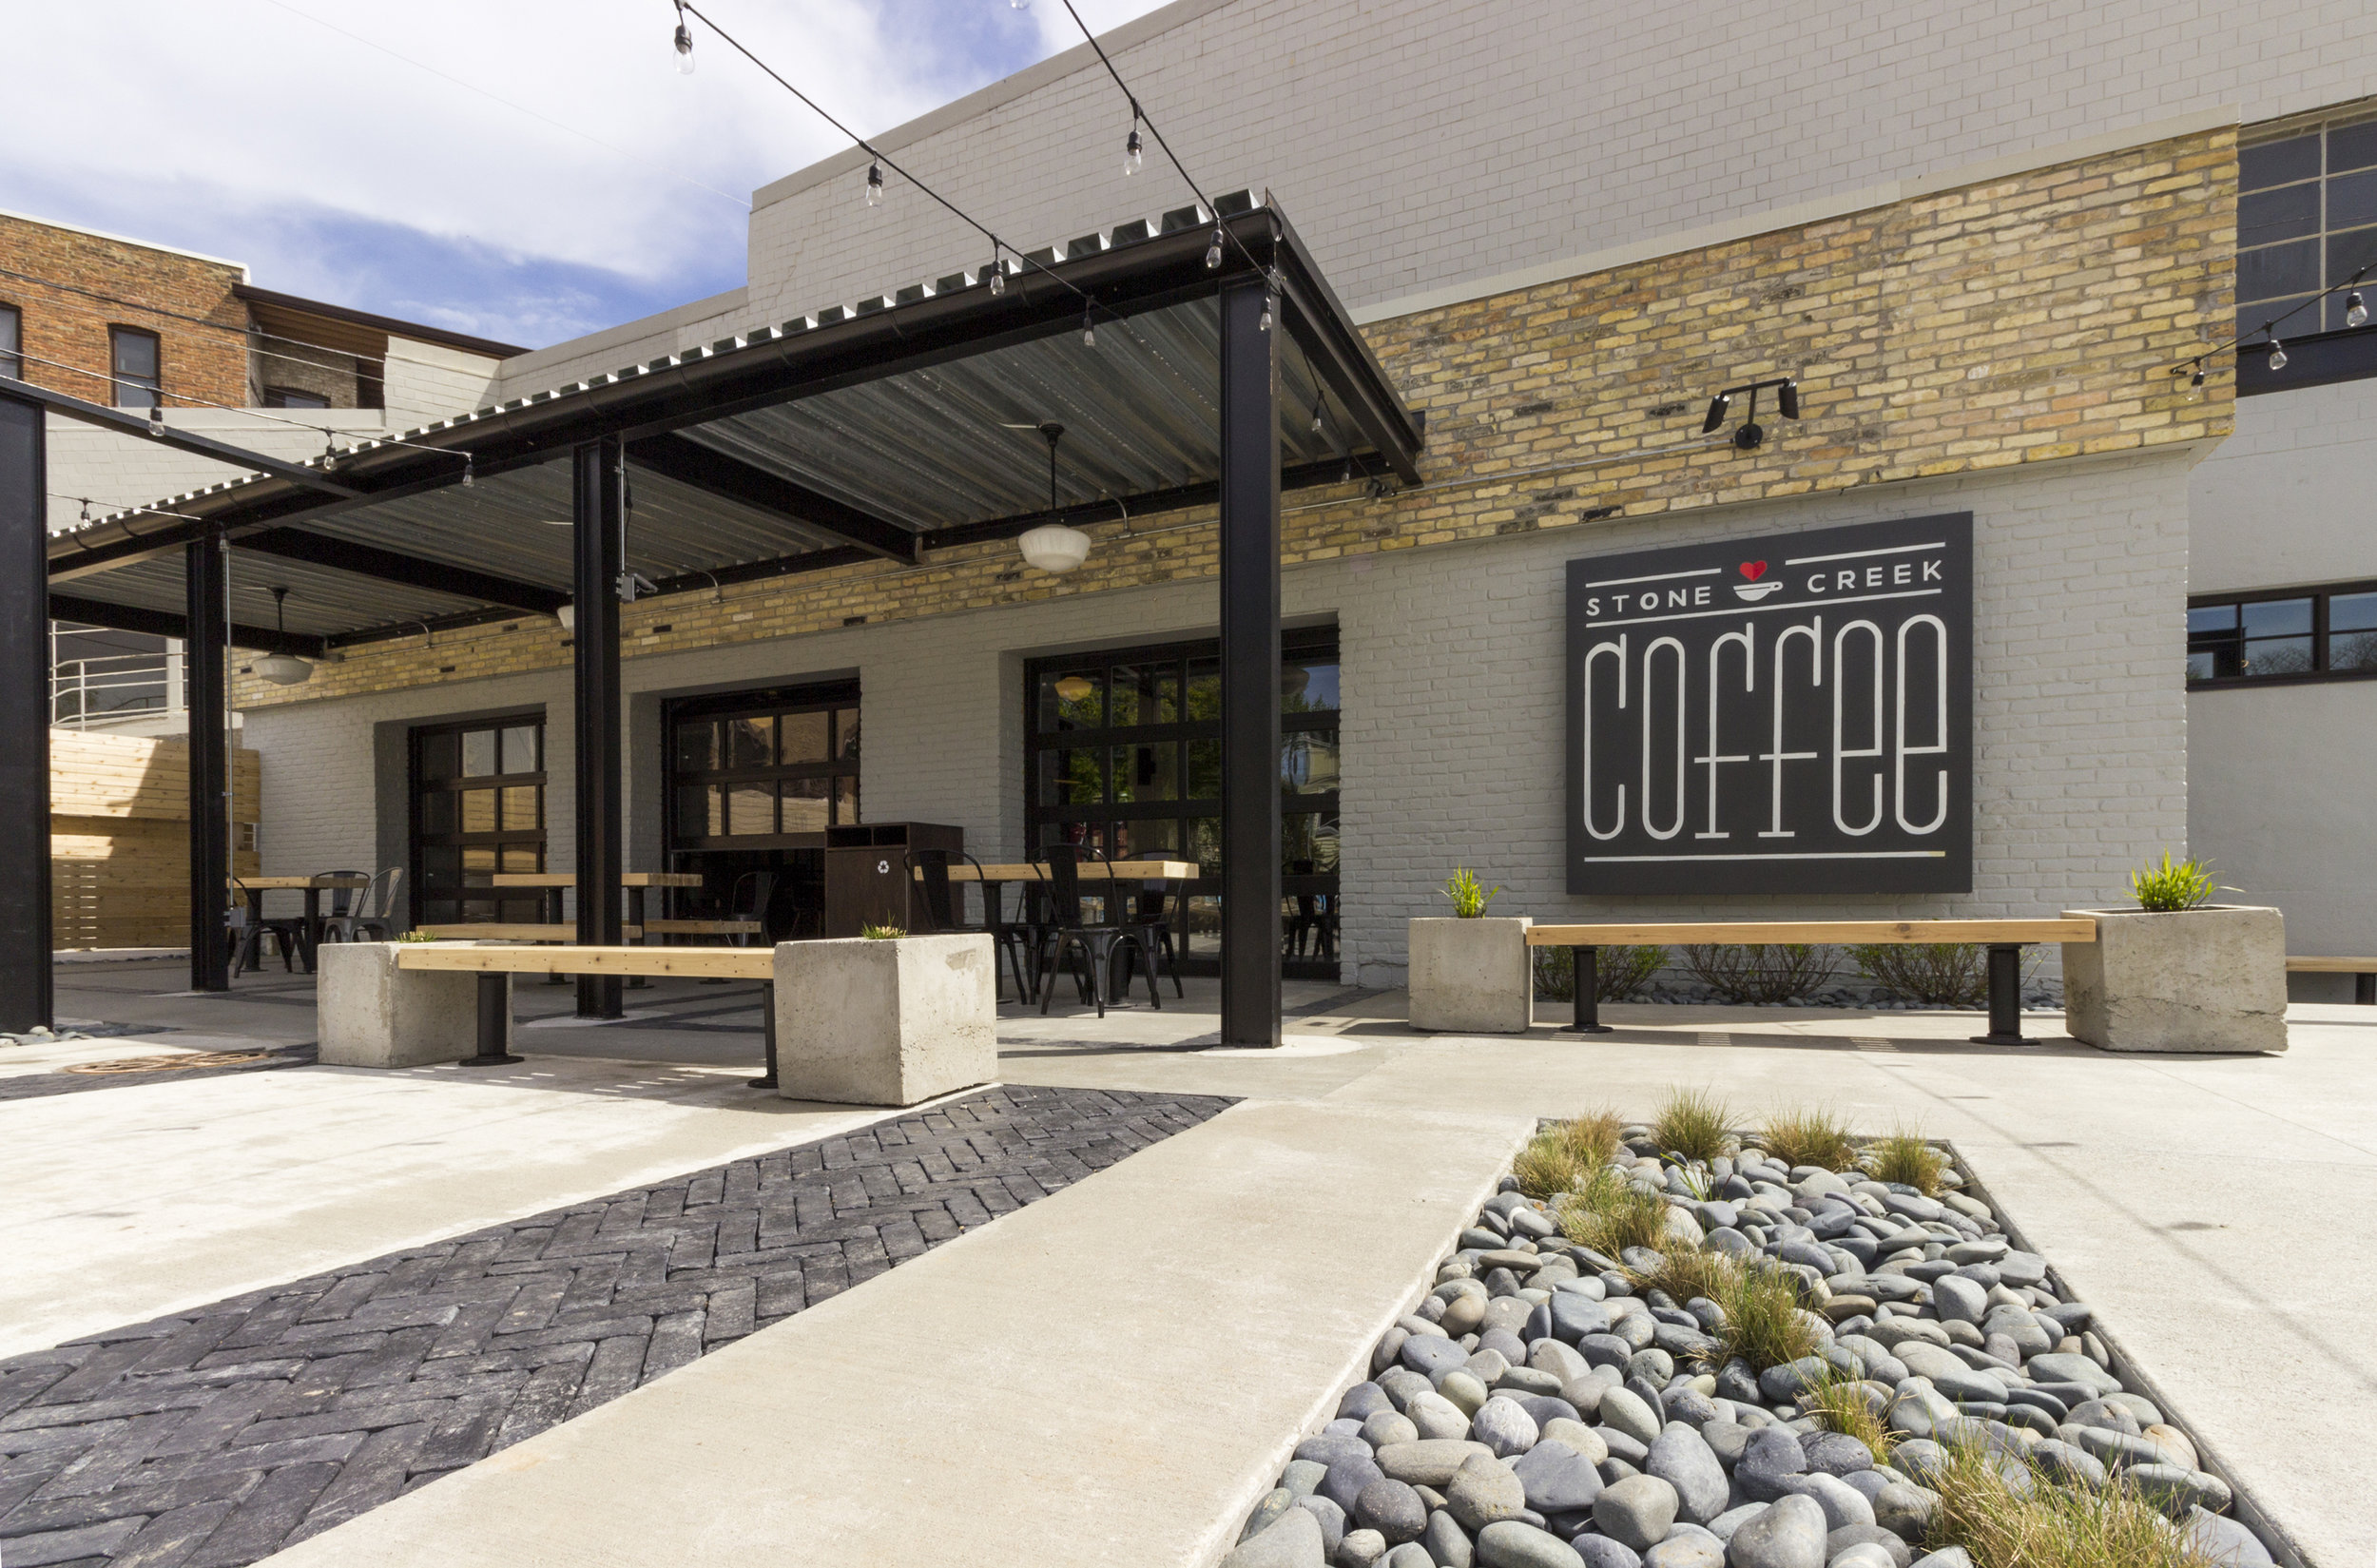 Stone Creek Coffee - Downer Cafe & Kitchen.   Winner of a 2019 Milwaukee Business Journal Real Estate Project Award.